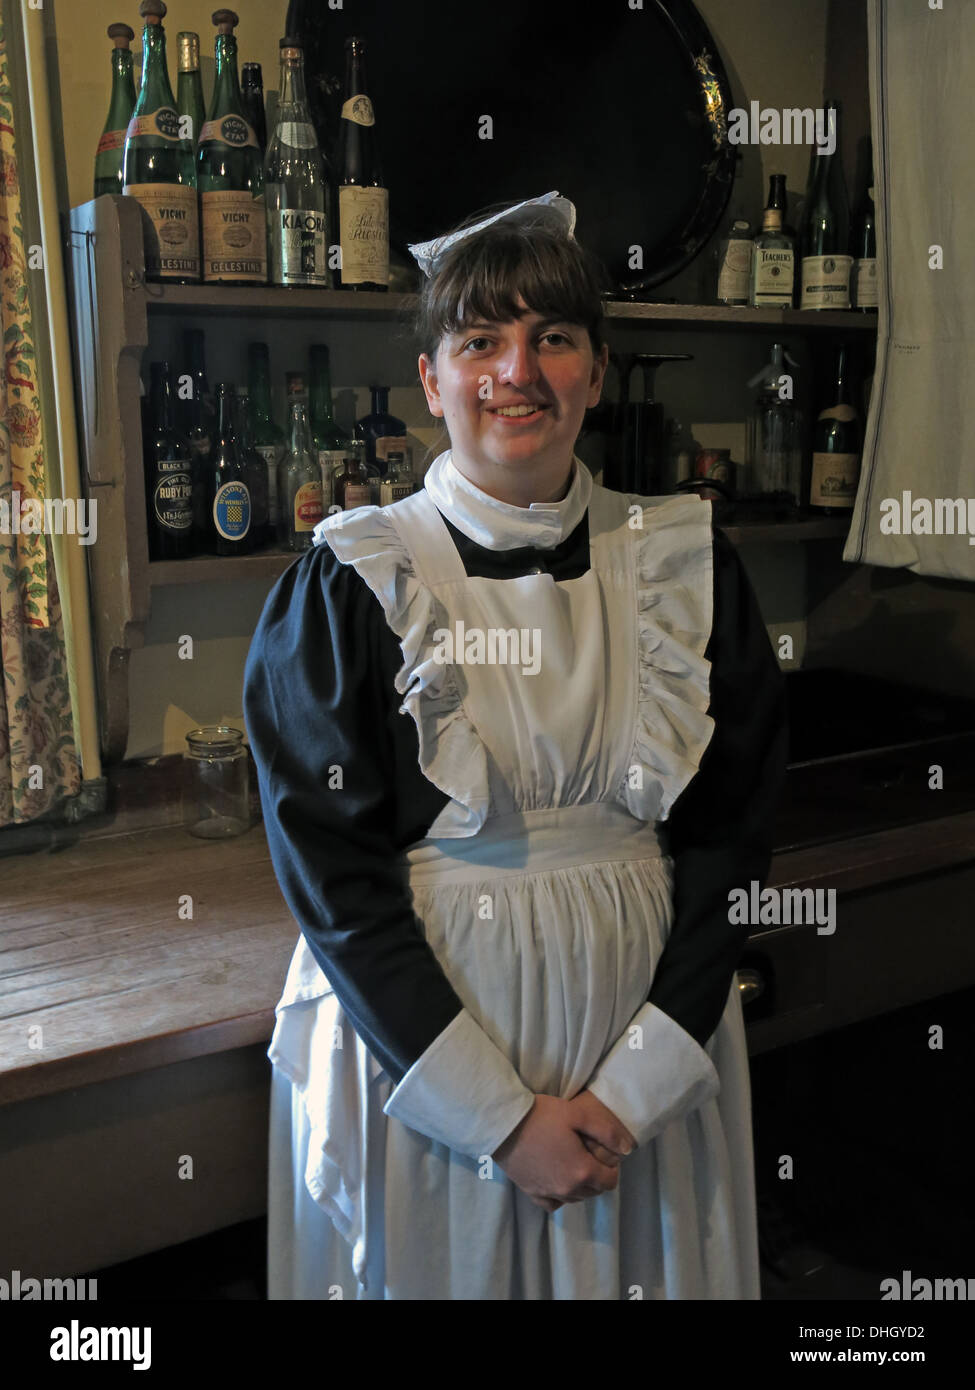 National,Trust,GB,Great,Britain,British,English,NT,Cheshire,England,UK,hat,smock,uniform,woman,lady,girl,female,a,bottles,bottle,pantry,down,stairs,downstairs,Gotonysmith